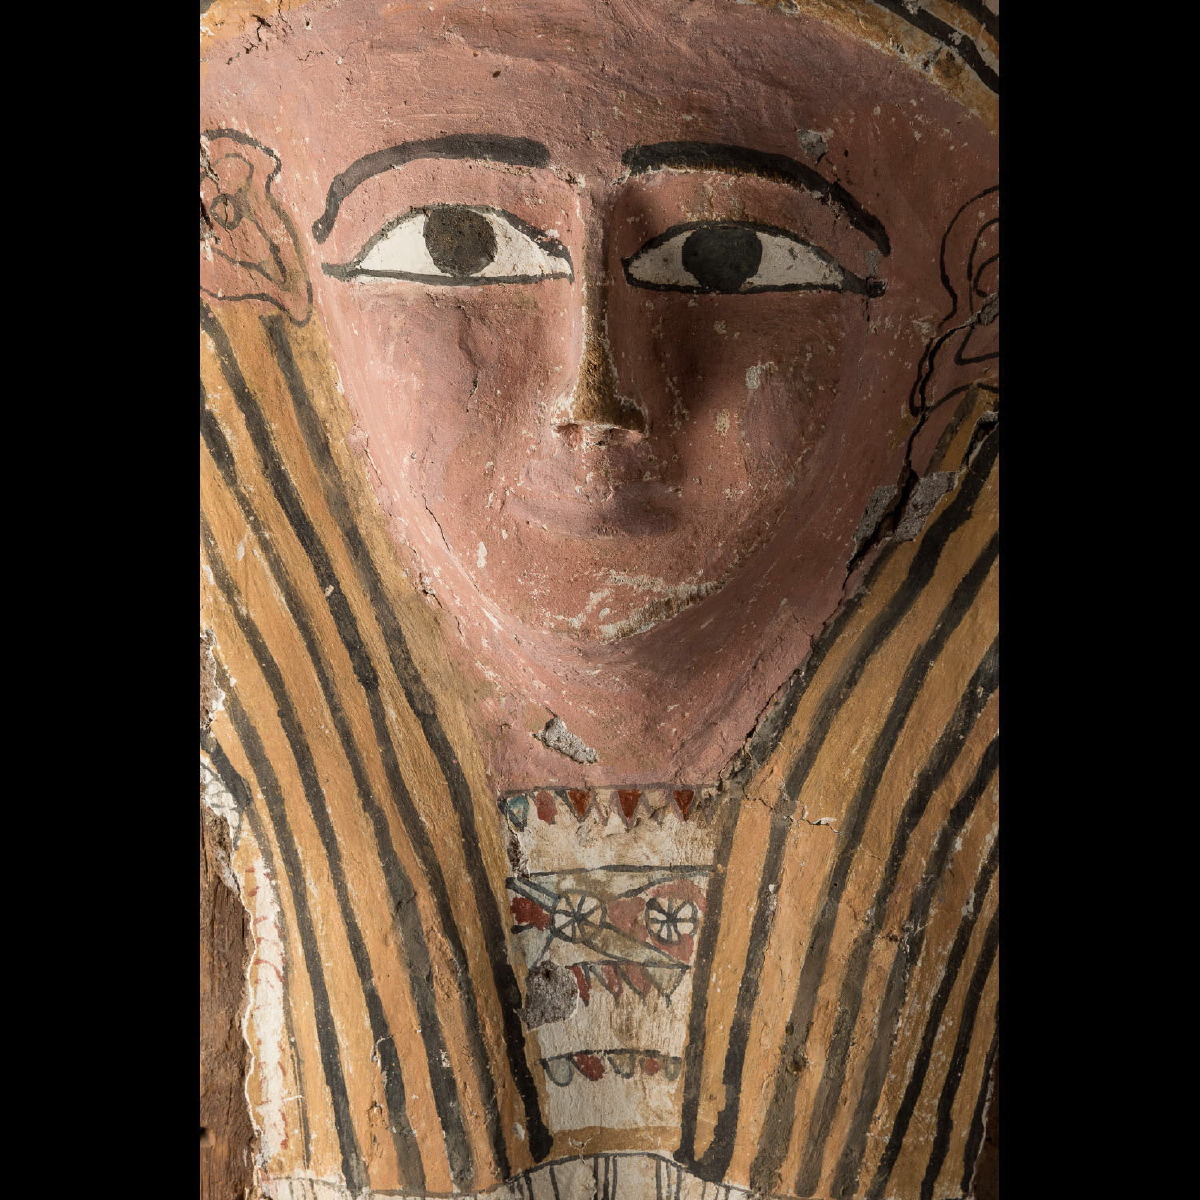 Photo of cover-of-sarcophagus-egypt-late-period-galerie-golconda